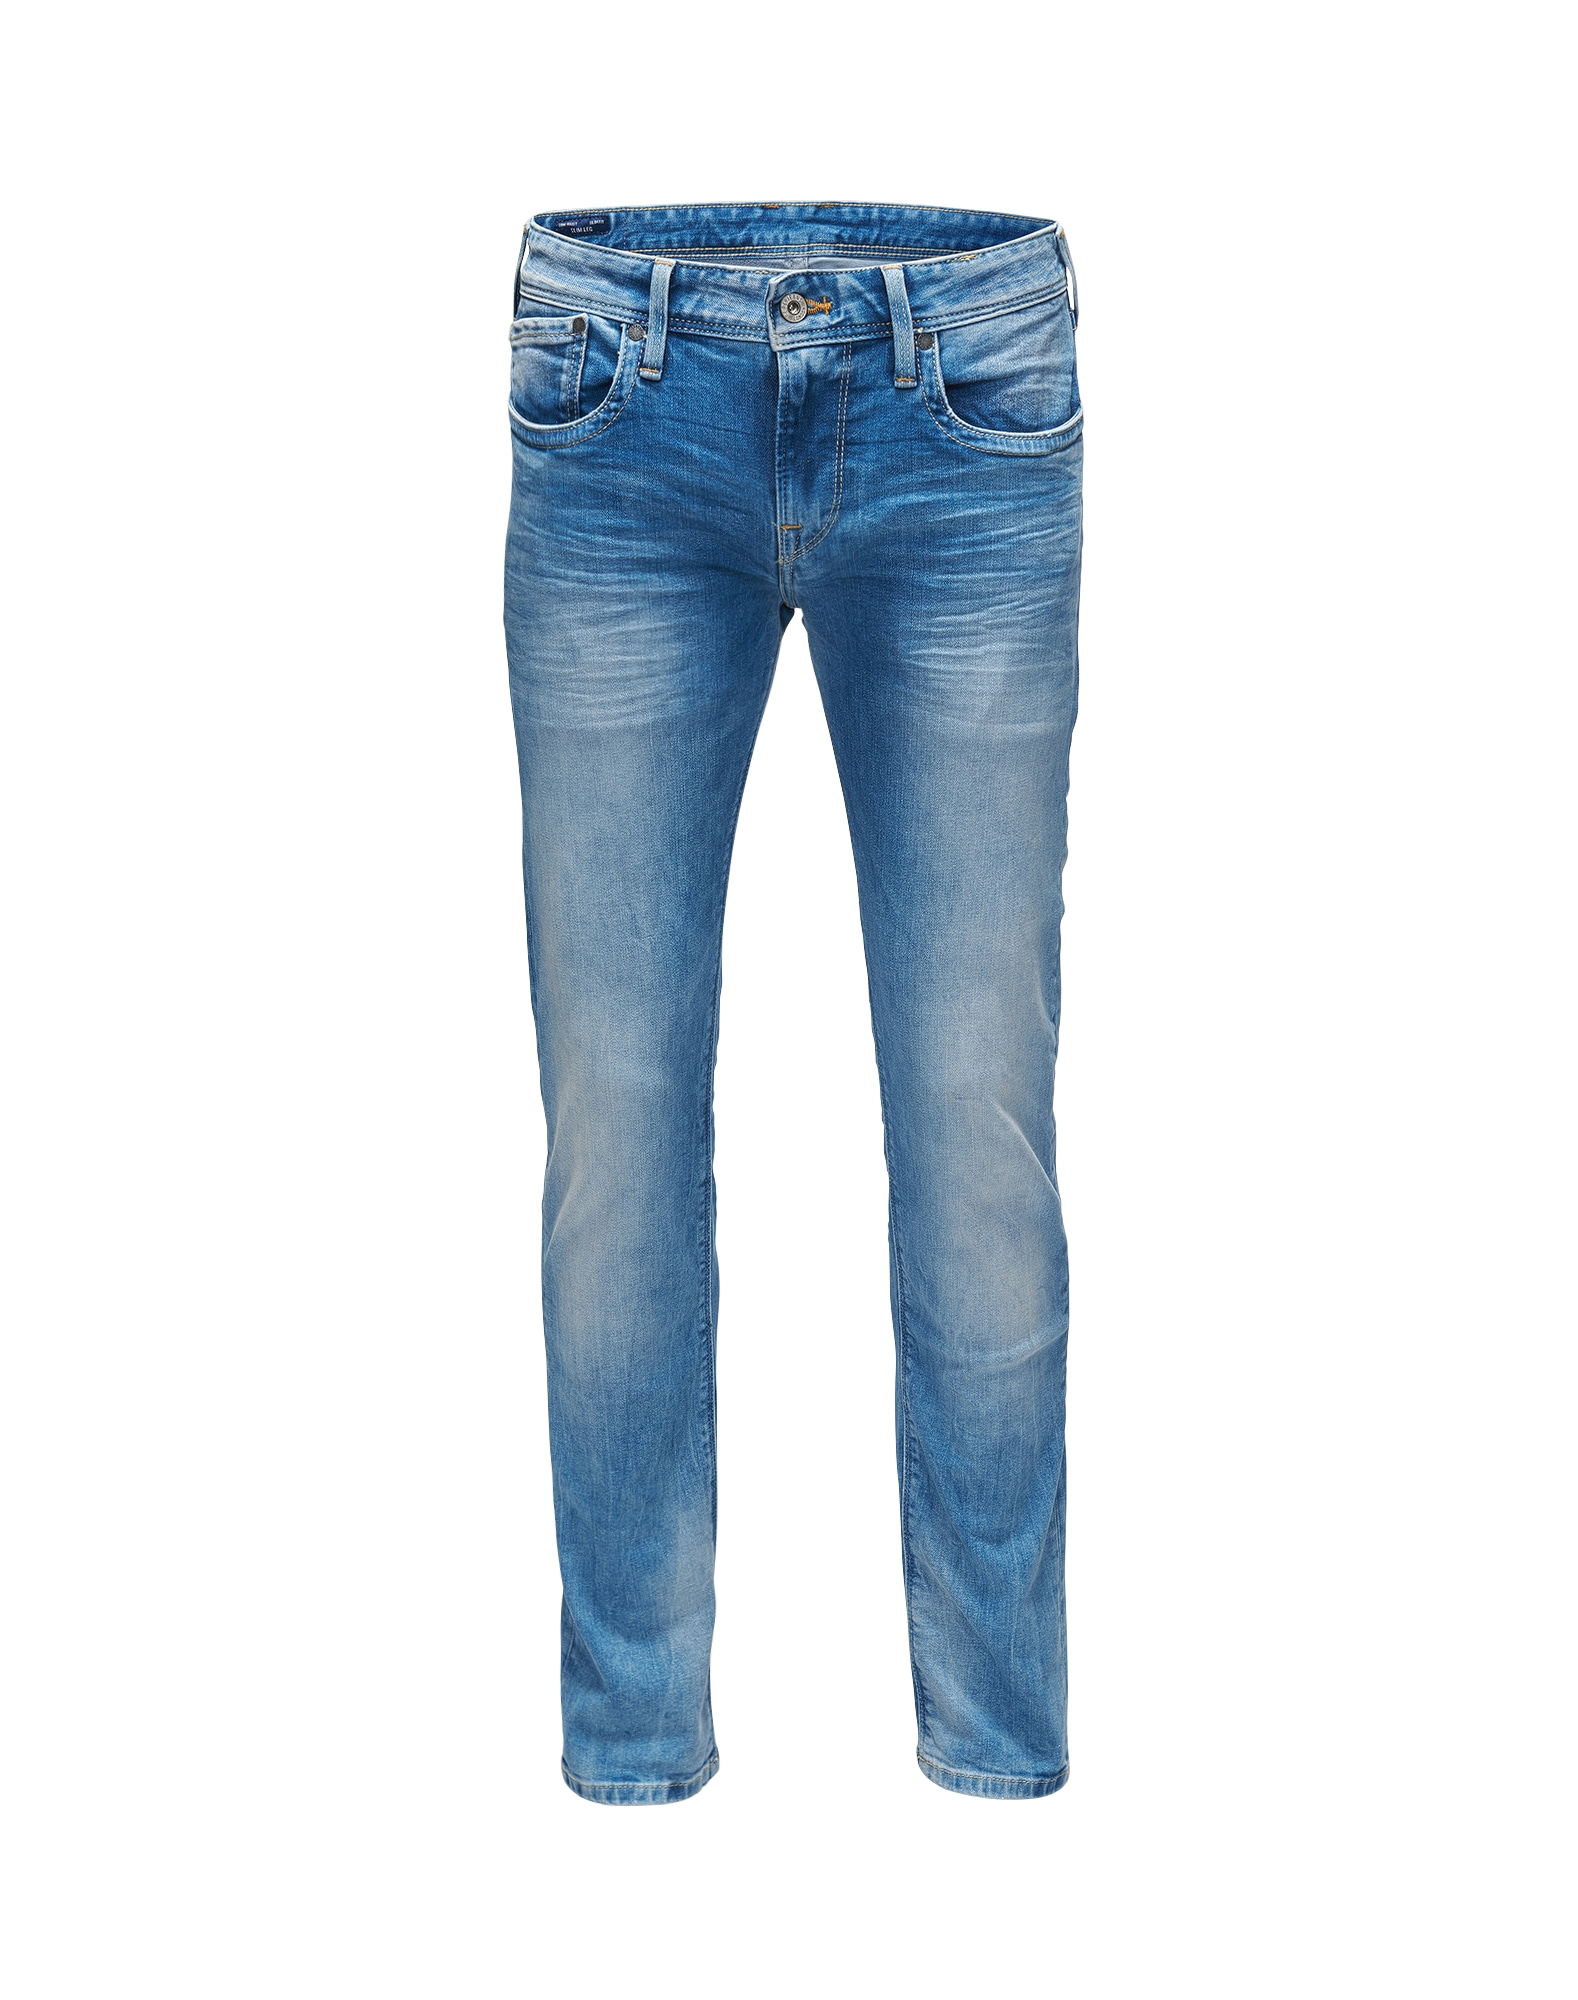 Pepe Jeans Heren Jeans Hatch blauw denim